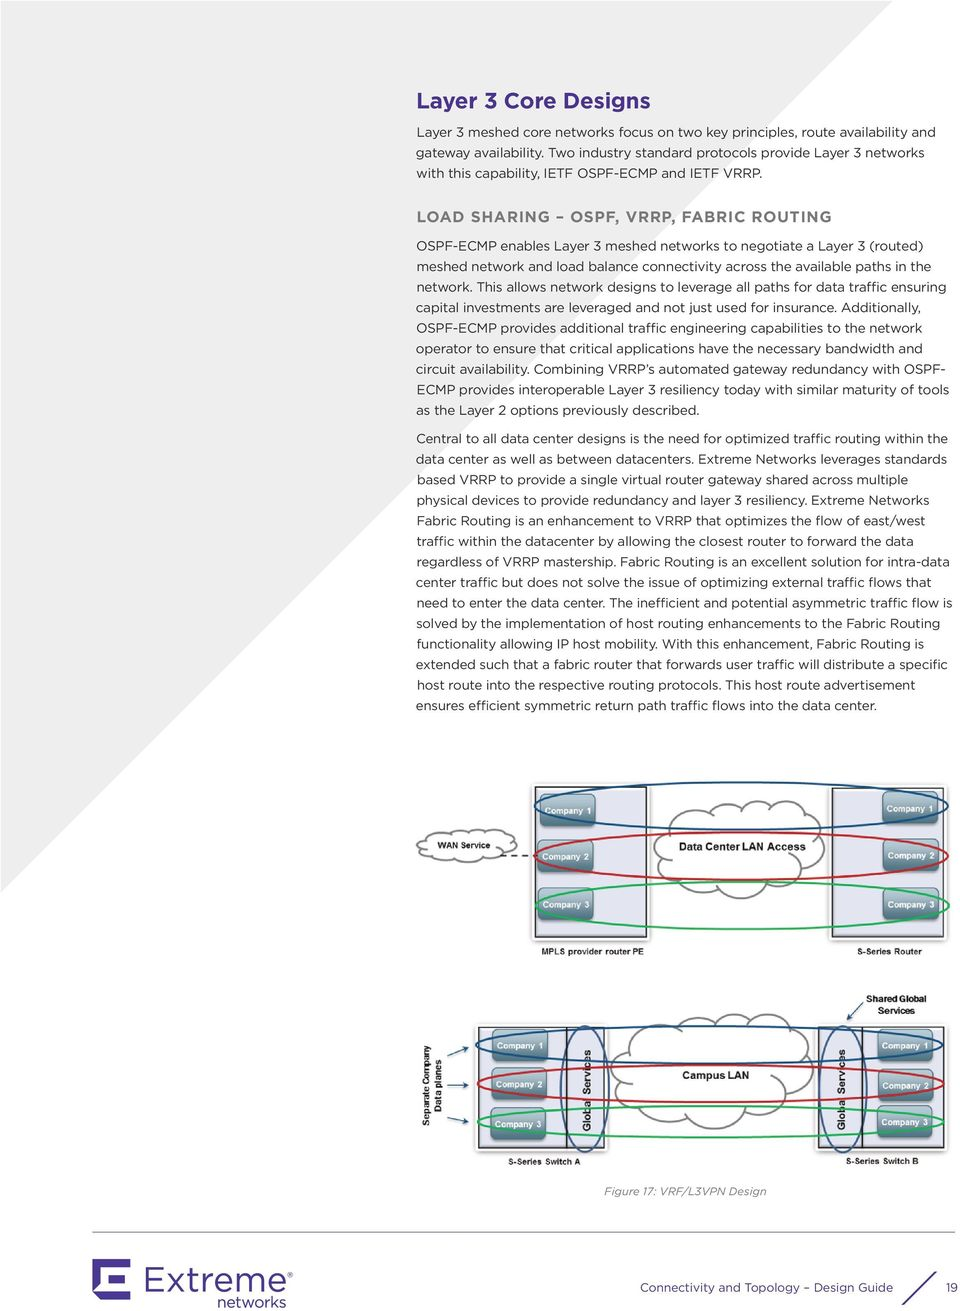 LOAD SHARING OSPF, VRRP, FABRIC ROUTING OSPF-ECMP enables Layer 3 meshed networks to negotiate a Layer 3 (routed) meshed network and load balance connectivity across the available paths in the